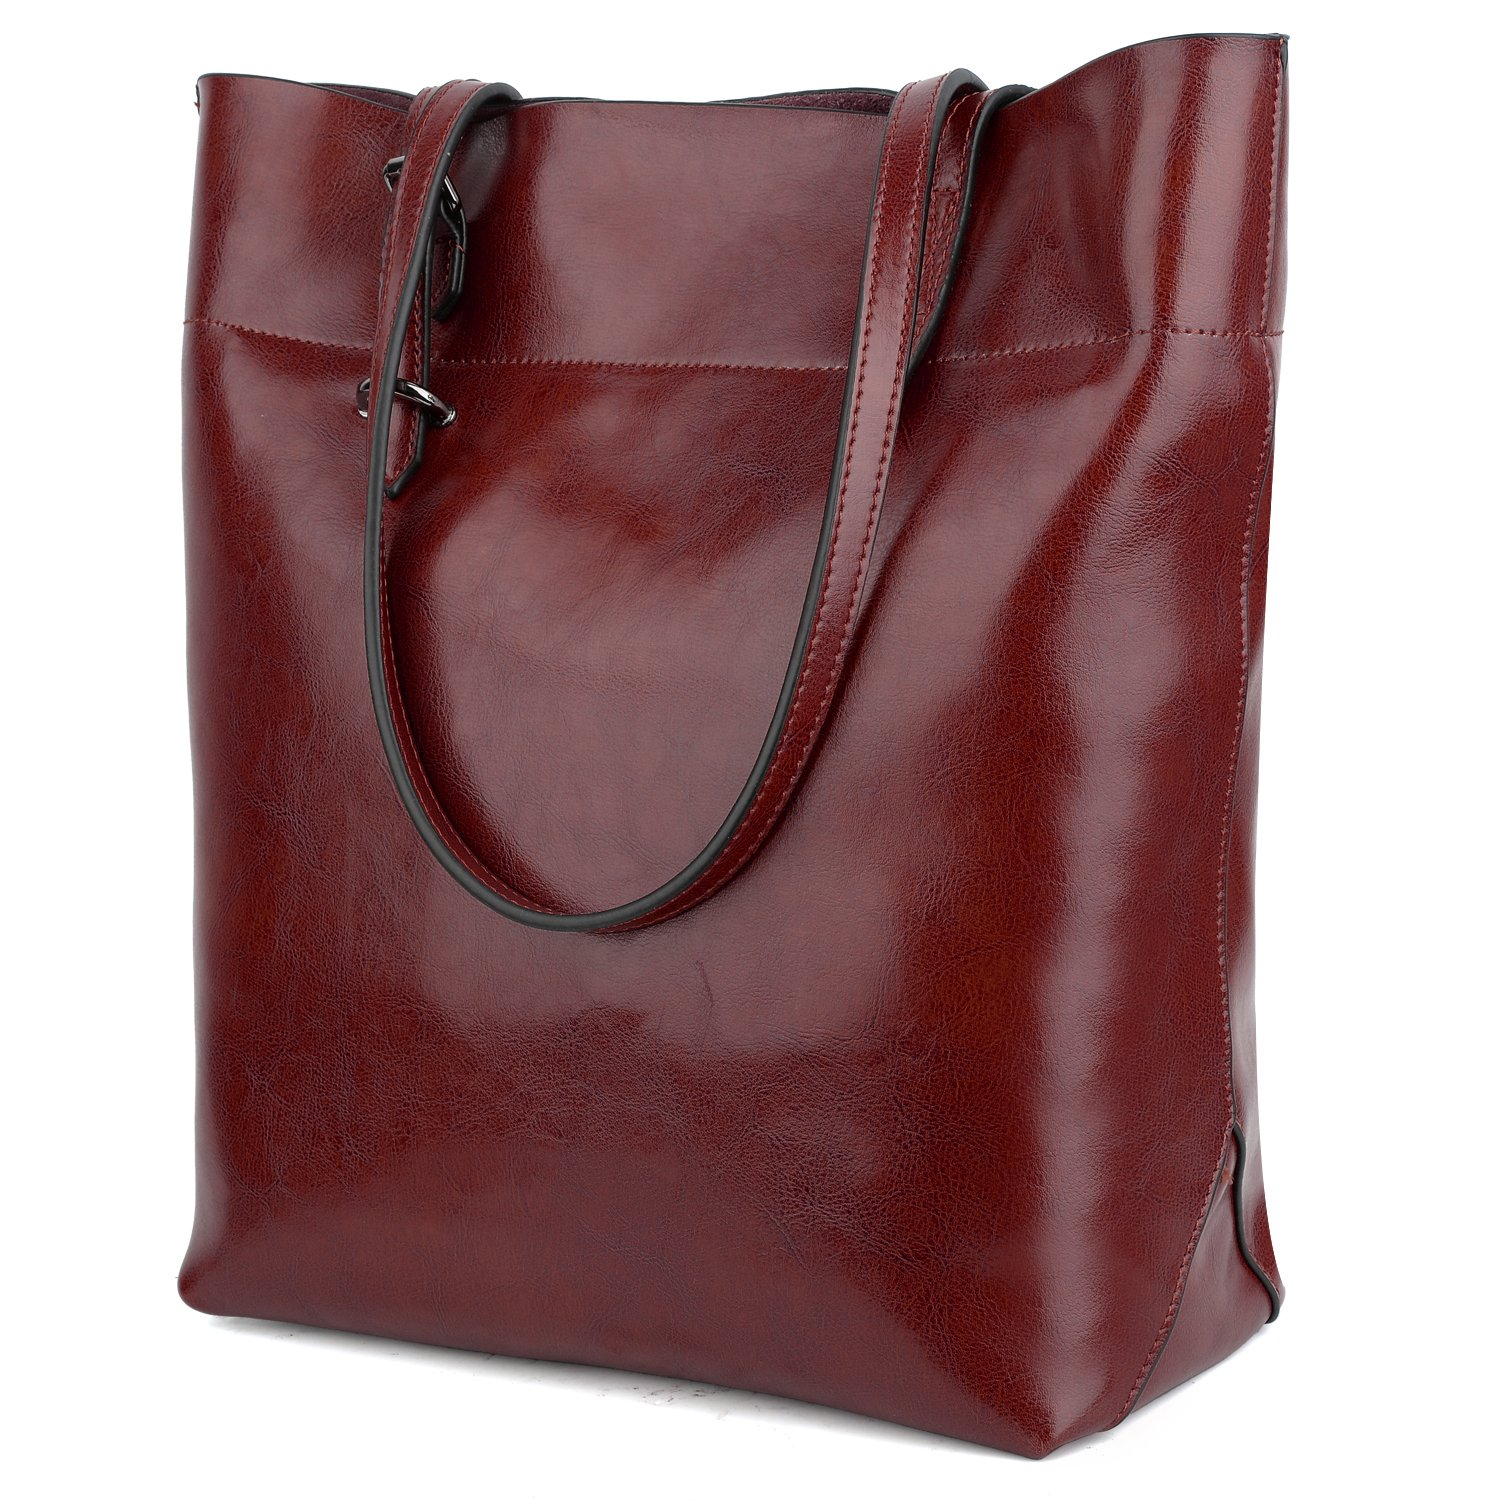 YALUXE Women's Soft Leather Work Tote Shoulder Bag (Upgraded 2.0) Wine Red